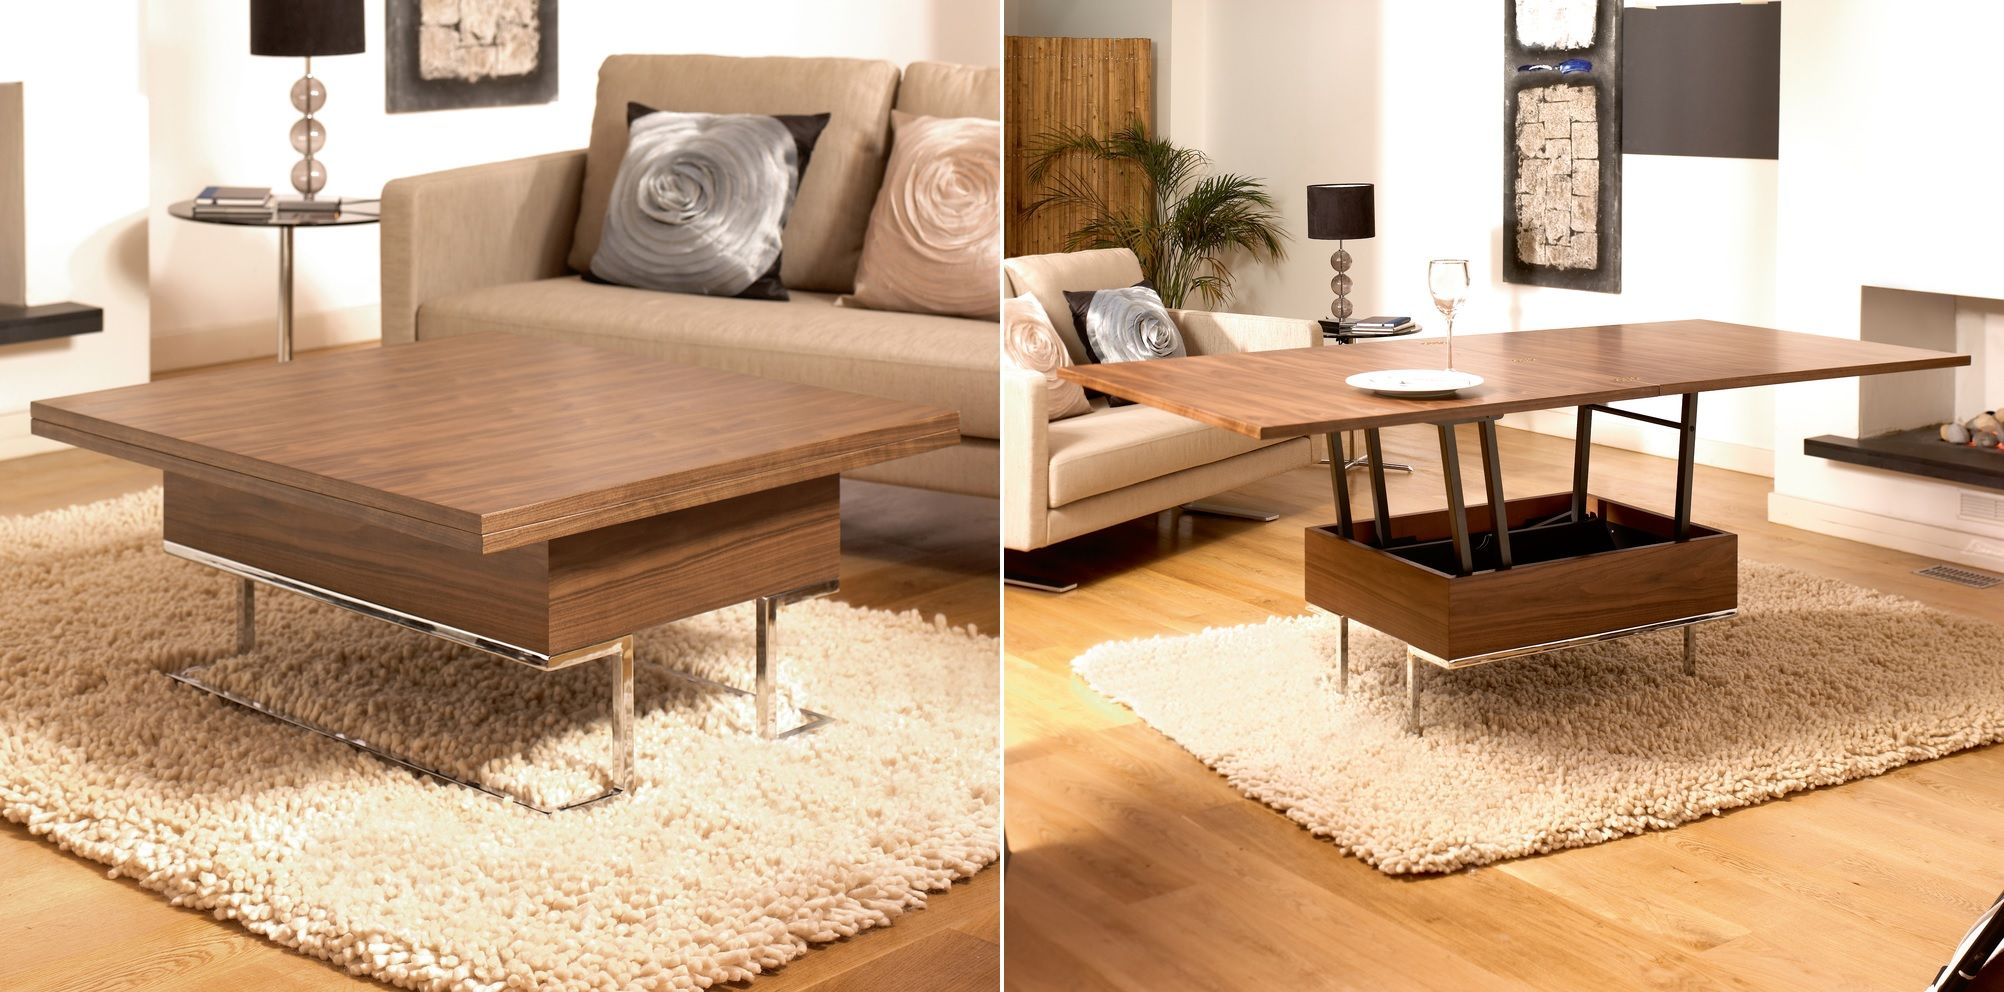 More Functions In A Compact Design Convertible Coffee Tables : Walnut Convertible coffee table from www.homedit.com size 2004 x 992 jpeg 281kB